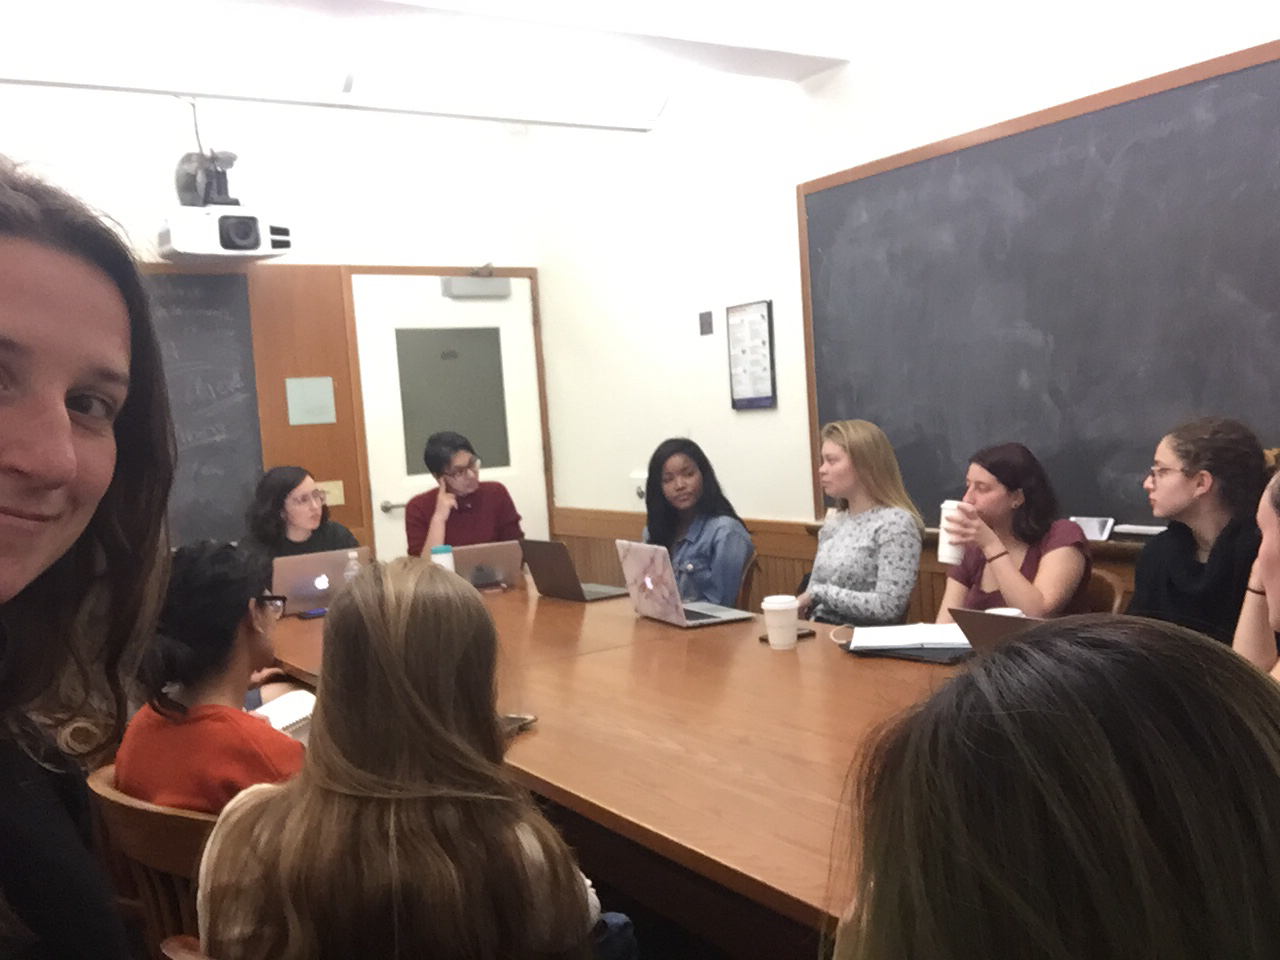 A quick photo from a Human Rights Center meeting!